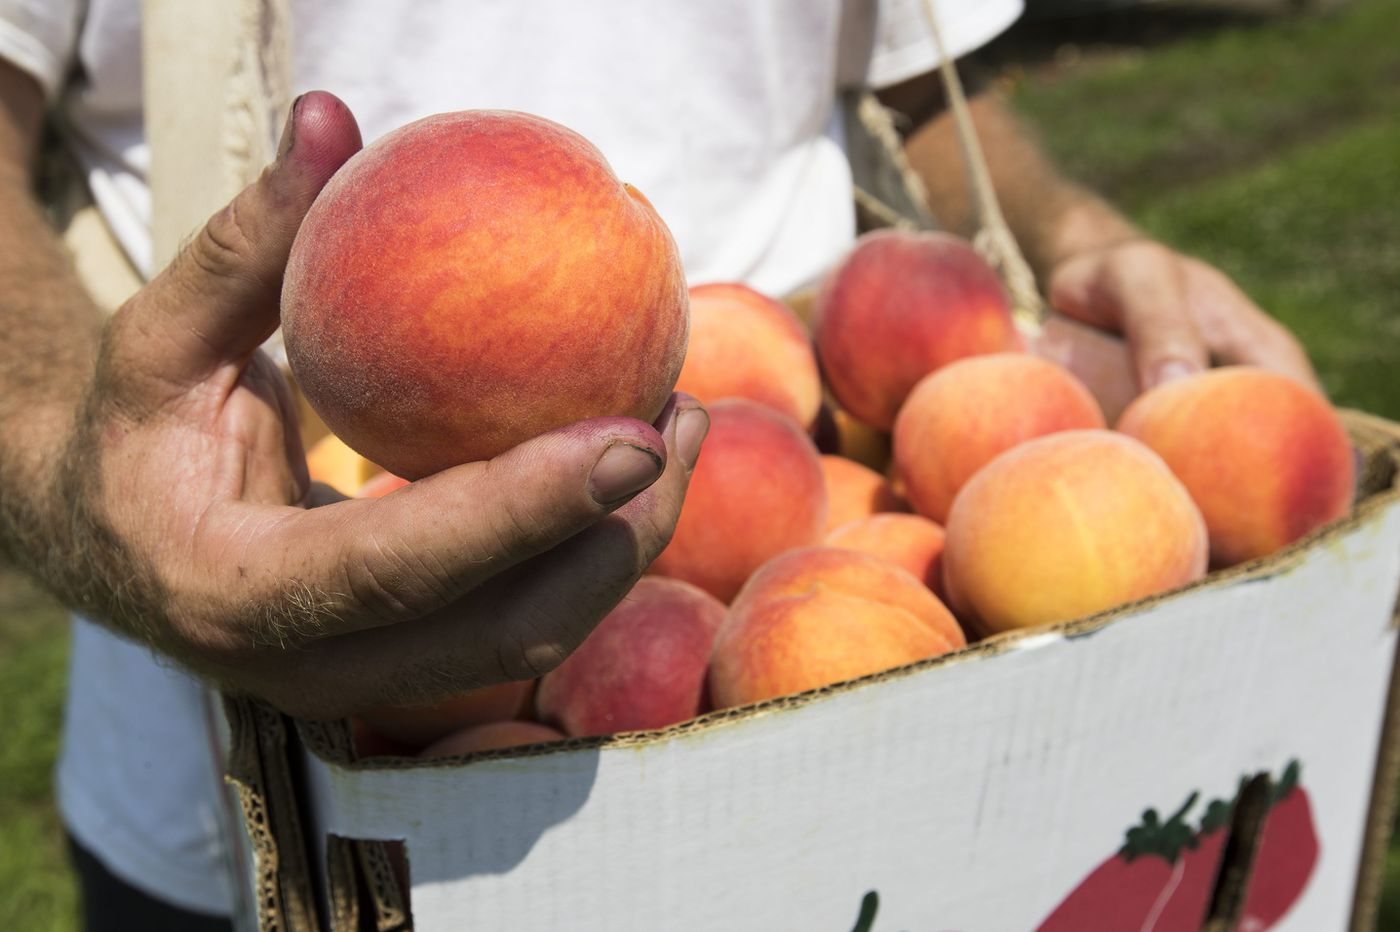 Wonder why Jersey peaches are so tasty this summer?